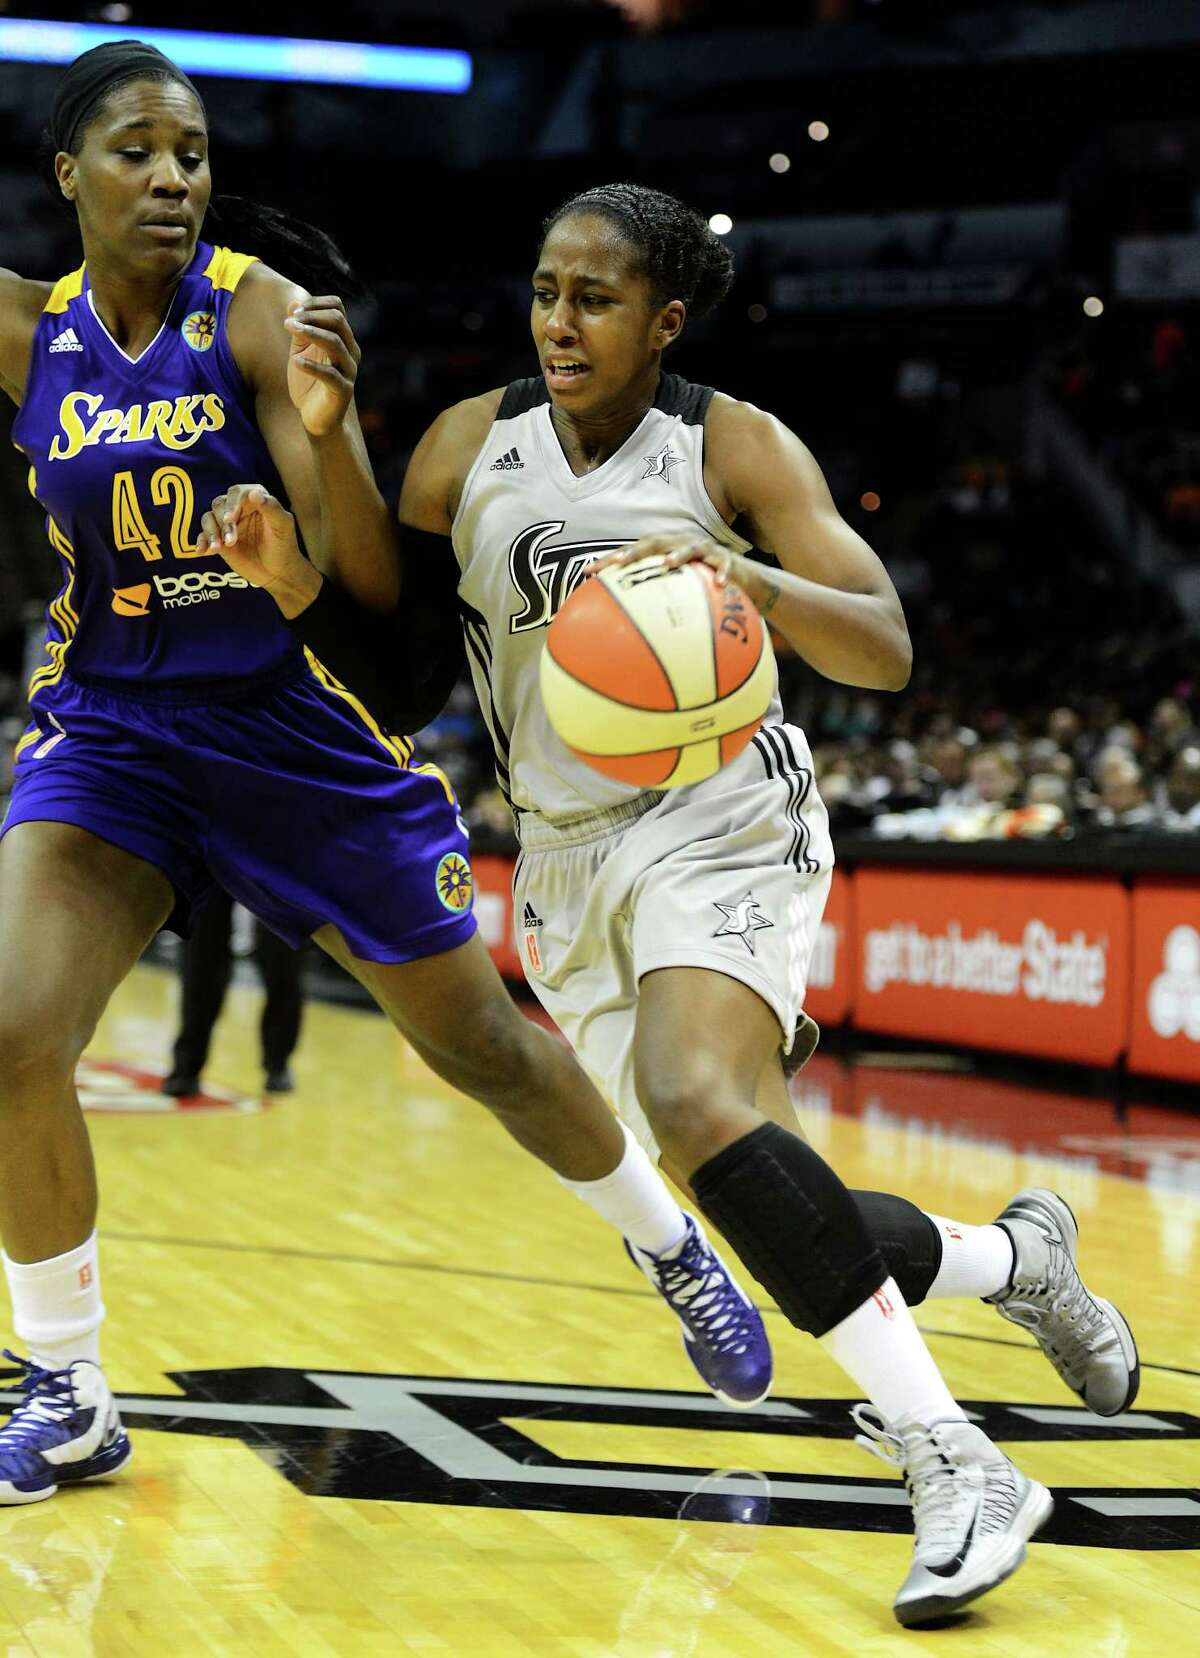 San Antonio Silver Stars' Shenise Johnson (42) drives to the basket around Los Angeles Sparks' Jantel Lavender (42) during a WNBA game at the AT&T Center. John Albright / Special to the Express-News